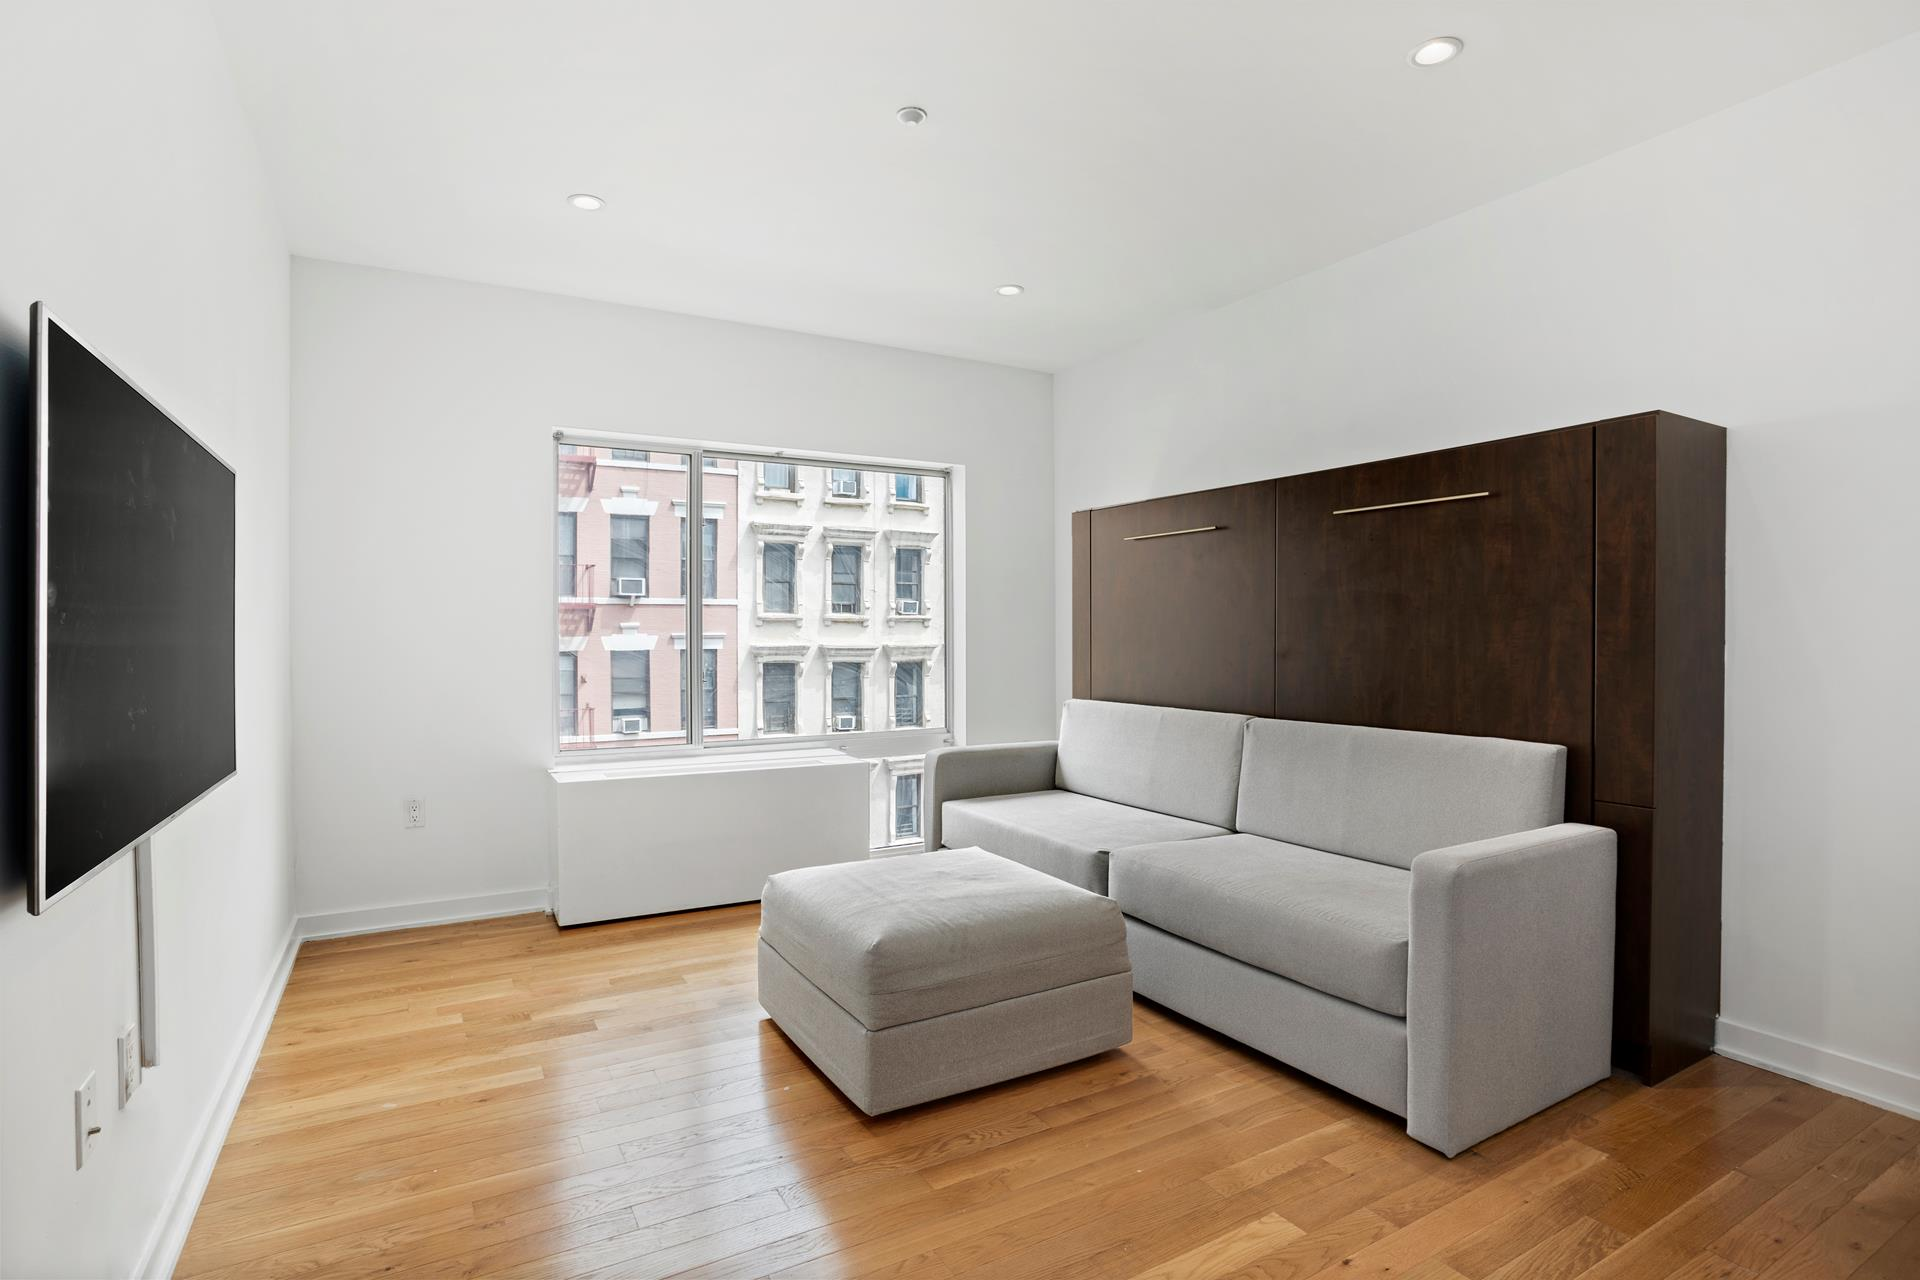 Offered is a roomy street facing one bedroom apt in mint condition at Embelesar 118 in East Harlem. Boasts an entrance foyer, 8 foot 6 inch ceilings, oak floors, an open kitchen equipped with new granite counters & backsplash, a gas stove, a microwave,   a dishwasher, lots of cabinets including 2 Lazy Susans, a food pantry, an in-unit washer/dryer, a full bathroom with tub, a spacious living room with built in Murphy bed as well as extra long couch & chaise ottoman; moreover, a flatscreen hookup able to accommodate   a 50 inch television, oversized windows, walled air conditioning & heating units, custom modular closet organizers and lights on dimmers. Vacant and freshly painted!    The building features an elevator, furnished roof deck, a part-time doorman & a virtual doorman, resident super, a gym with adjacent patio, an attached parking garage ($200 per month), storage cages ($26-$40 per month), bike room rack ($10+/- per month), and   a package room with cold storage. Monthly maintenance includes gas heat and cooking gas. 90% financing allowed. NO CURRENT NOR PENDING MONTHLY ASSESSMENTS. TAX ABATEMENT EXPIRES 2032. 170% MEDIAN INCOME APPLIES. GROSS ANNUAL INCOME MUST NOT EXCEED $142,120   FOR SINGLE INCOME OR $162,350 FOR 2 PERSONS COMBINED INCOME. MUST BE A PRIMARY RESIDENCE. NO INVESTORS. Subletting allowed 2 out of 4 years after 2 years of residency. Pet/Dog friendly (2 maximum).    Located across the street from Hunter College's new graduate school of social work. 2 blocks from the #6 subway on Lexington Ave & East 116th Street. One stop to 125th Street's commercial thoroughfare for a host of services including Metro North and Whole Foods.   A short walk/drive to the East River Plaza Mall (Aldi supermarket, Target, Marshall's, Old Navy, Burlington, Bob's Furniture, Costco, Mattress Firm, Pet Smart, Game Stop, Planet Fitness, Applebee's) and the FDR Drive south.